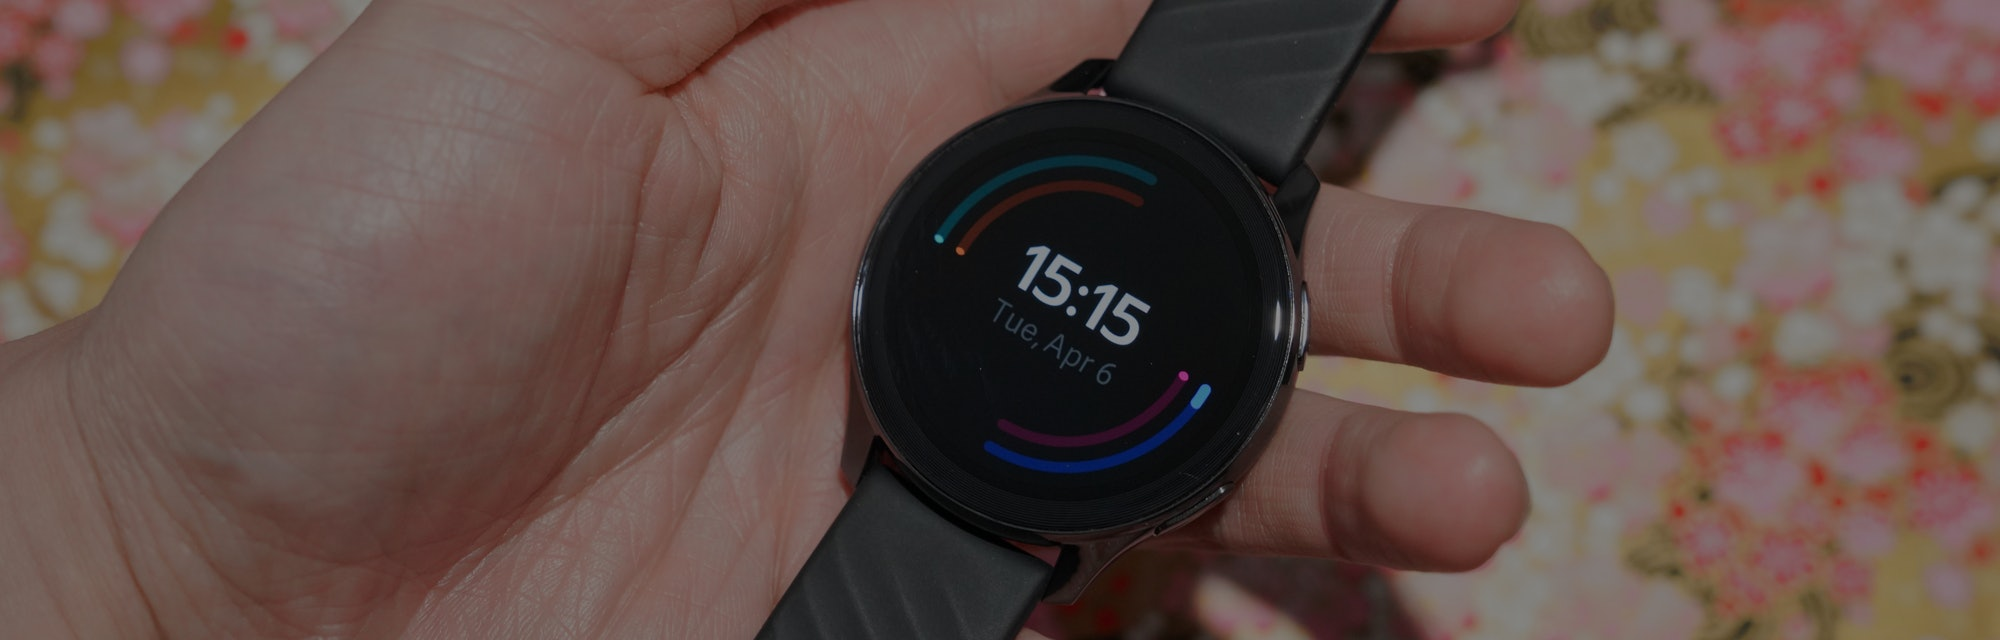 OnePlus Watch hands-on: One week with the the OnePlus's first smartwatch